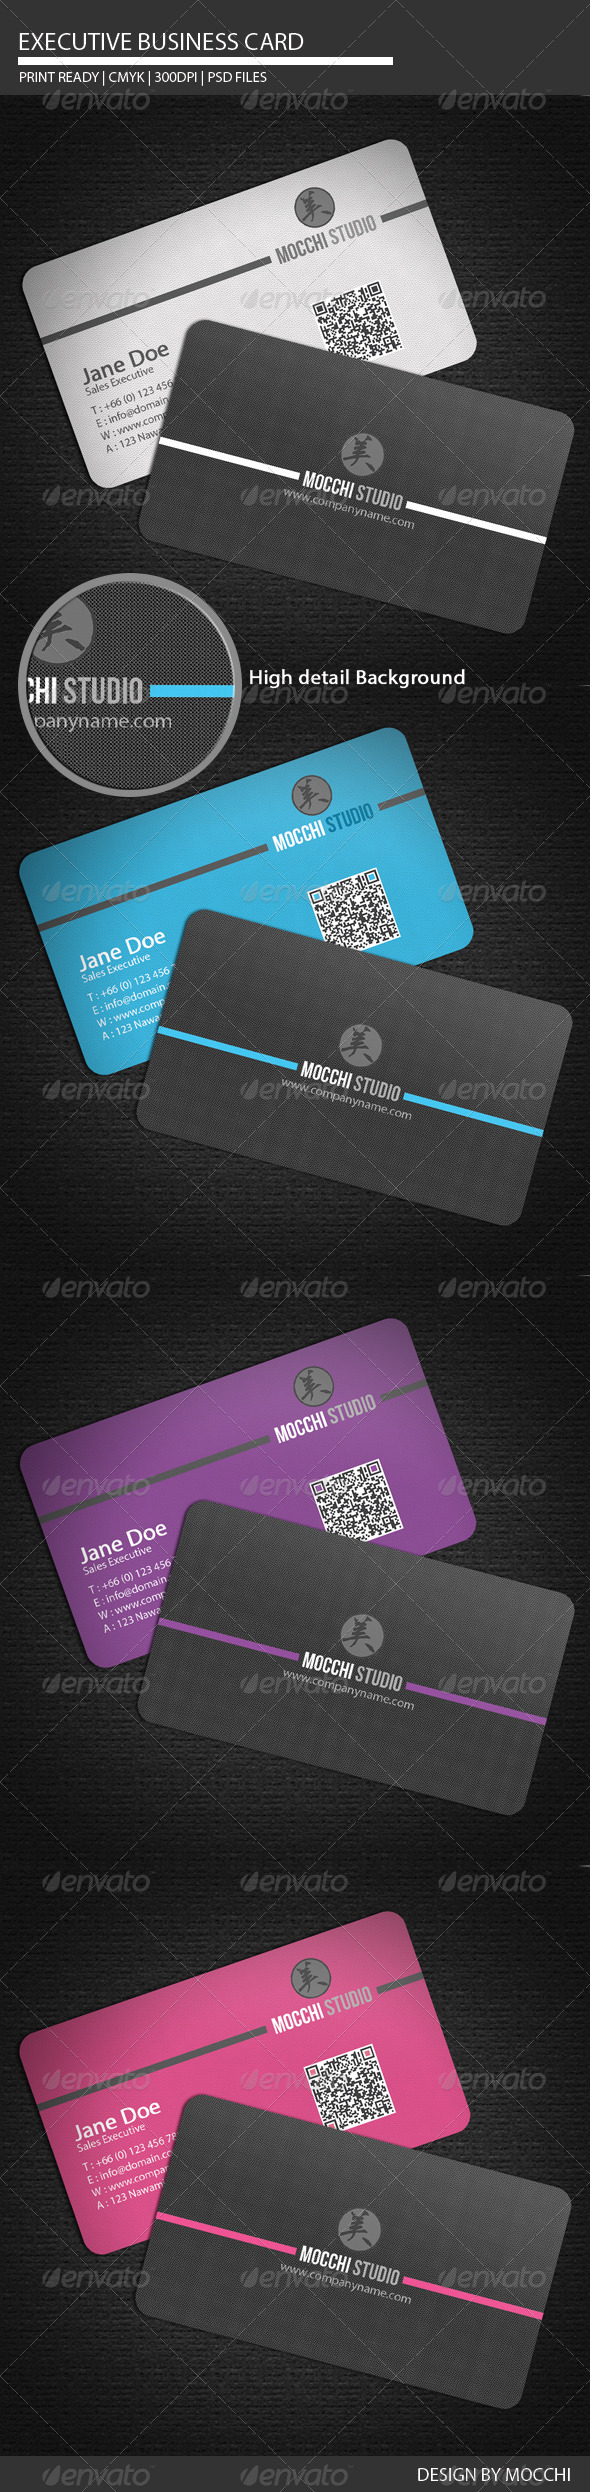 Executive Business Card - Corporate Business Cards